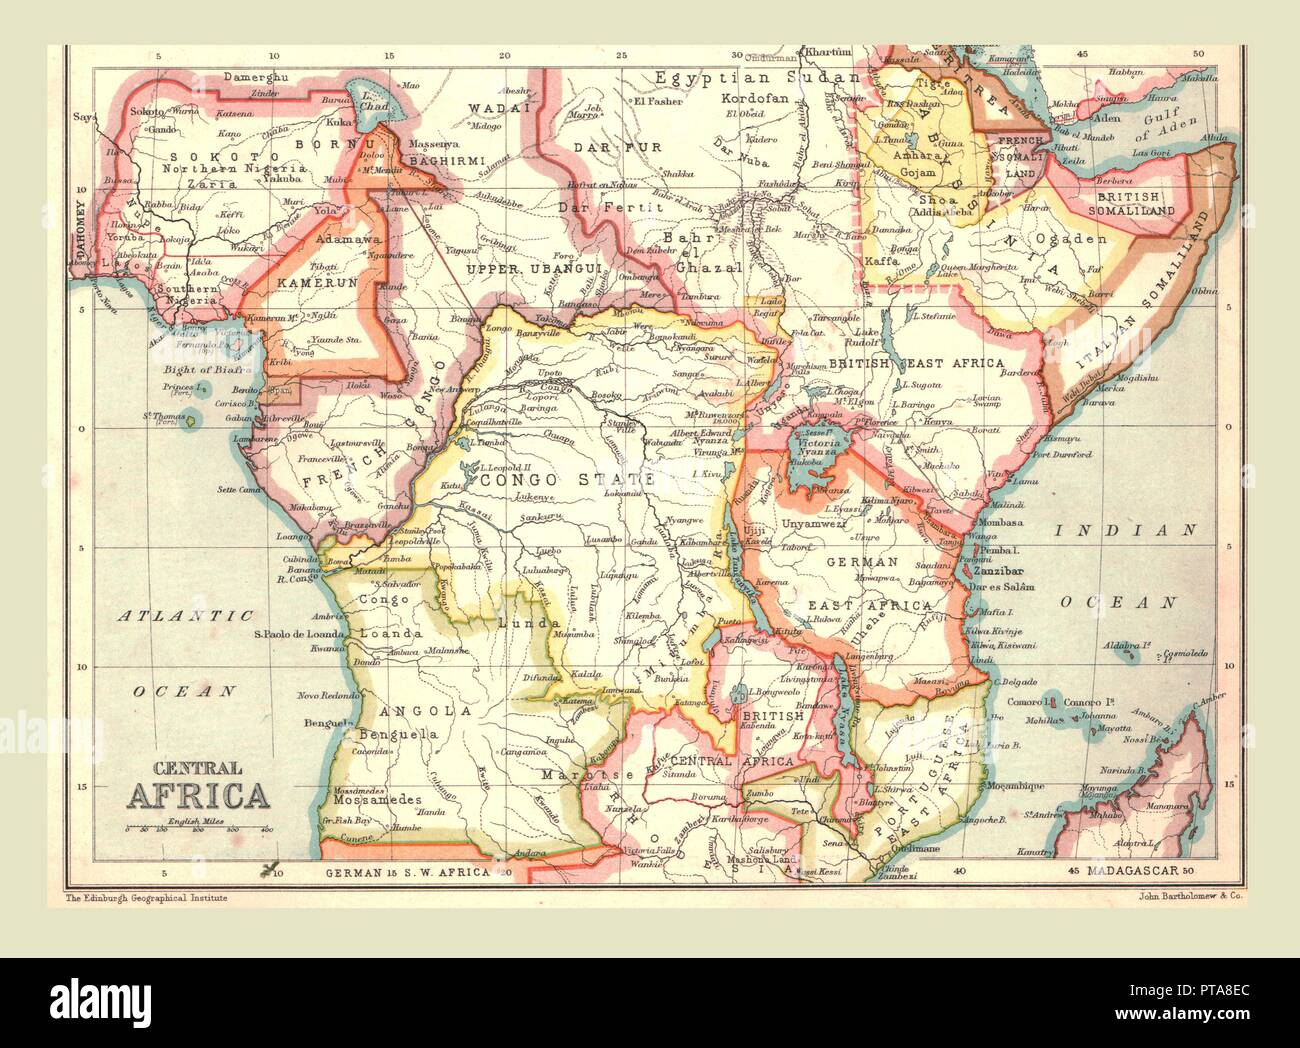 Map of Central Africa, 1902. Showing colonial possessions including Italian Somaliland, Portuguese East Africa, German East Africa, British Central Africa and French Congo From The Century Atlas of the World. [John Walker & Co, Ltd., London, 1902] - Stock Image